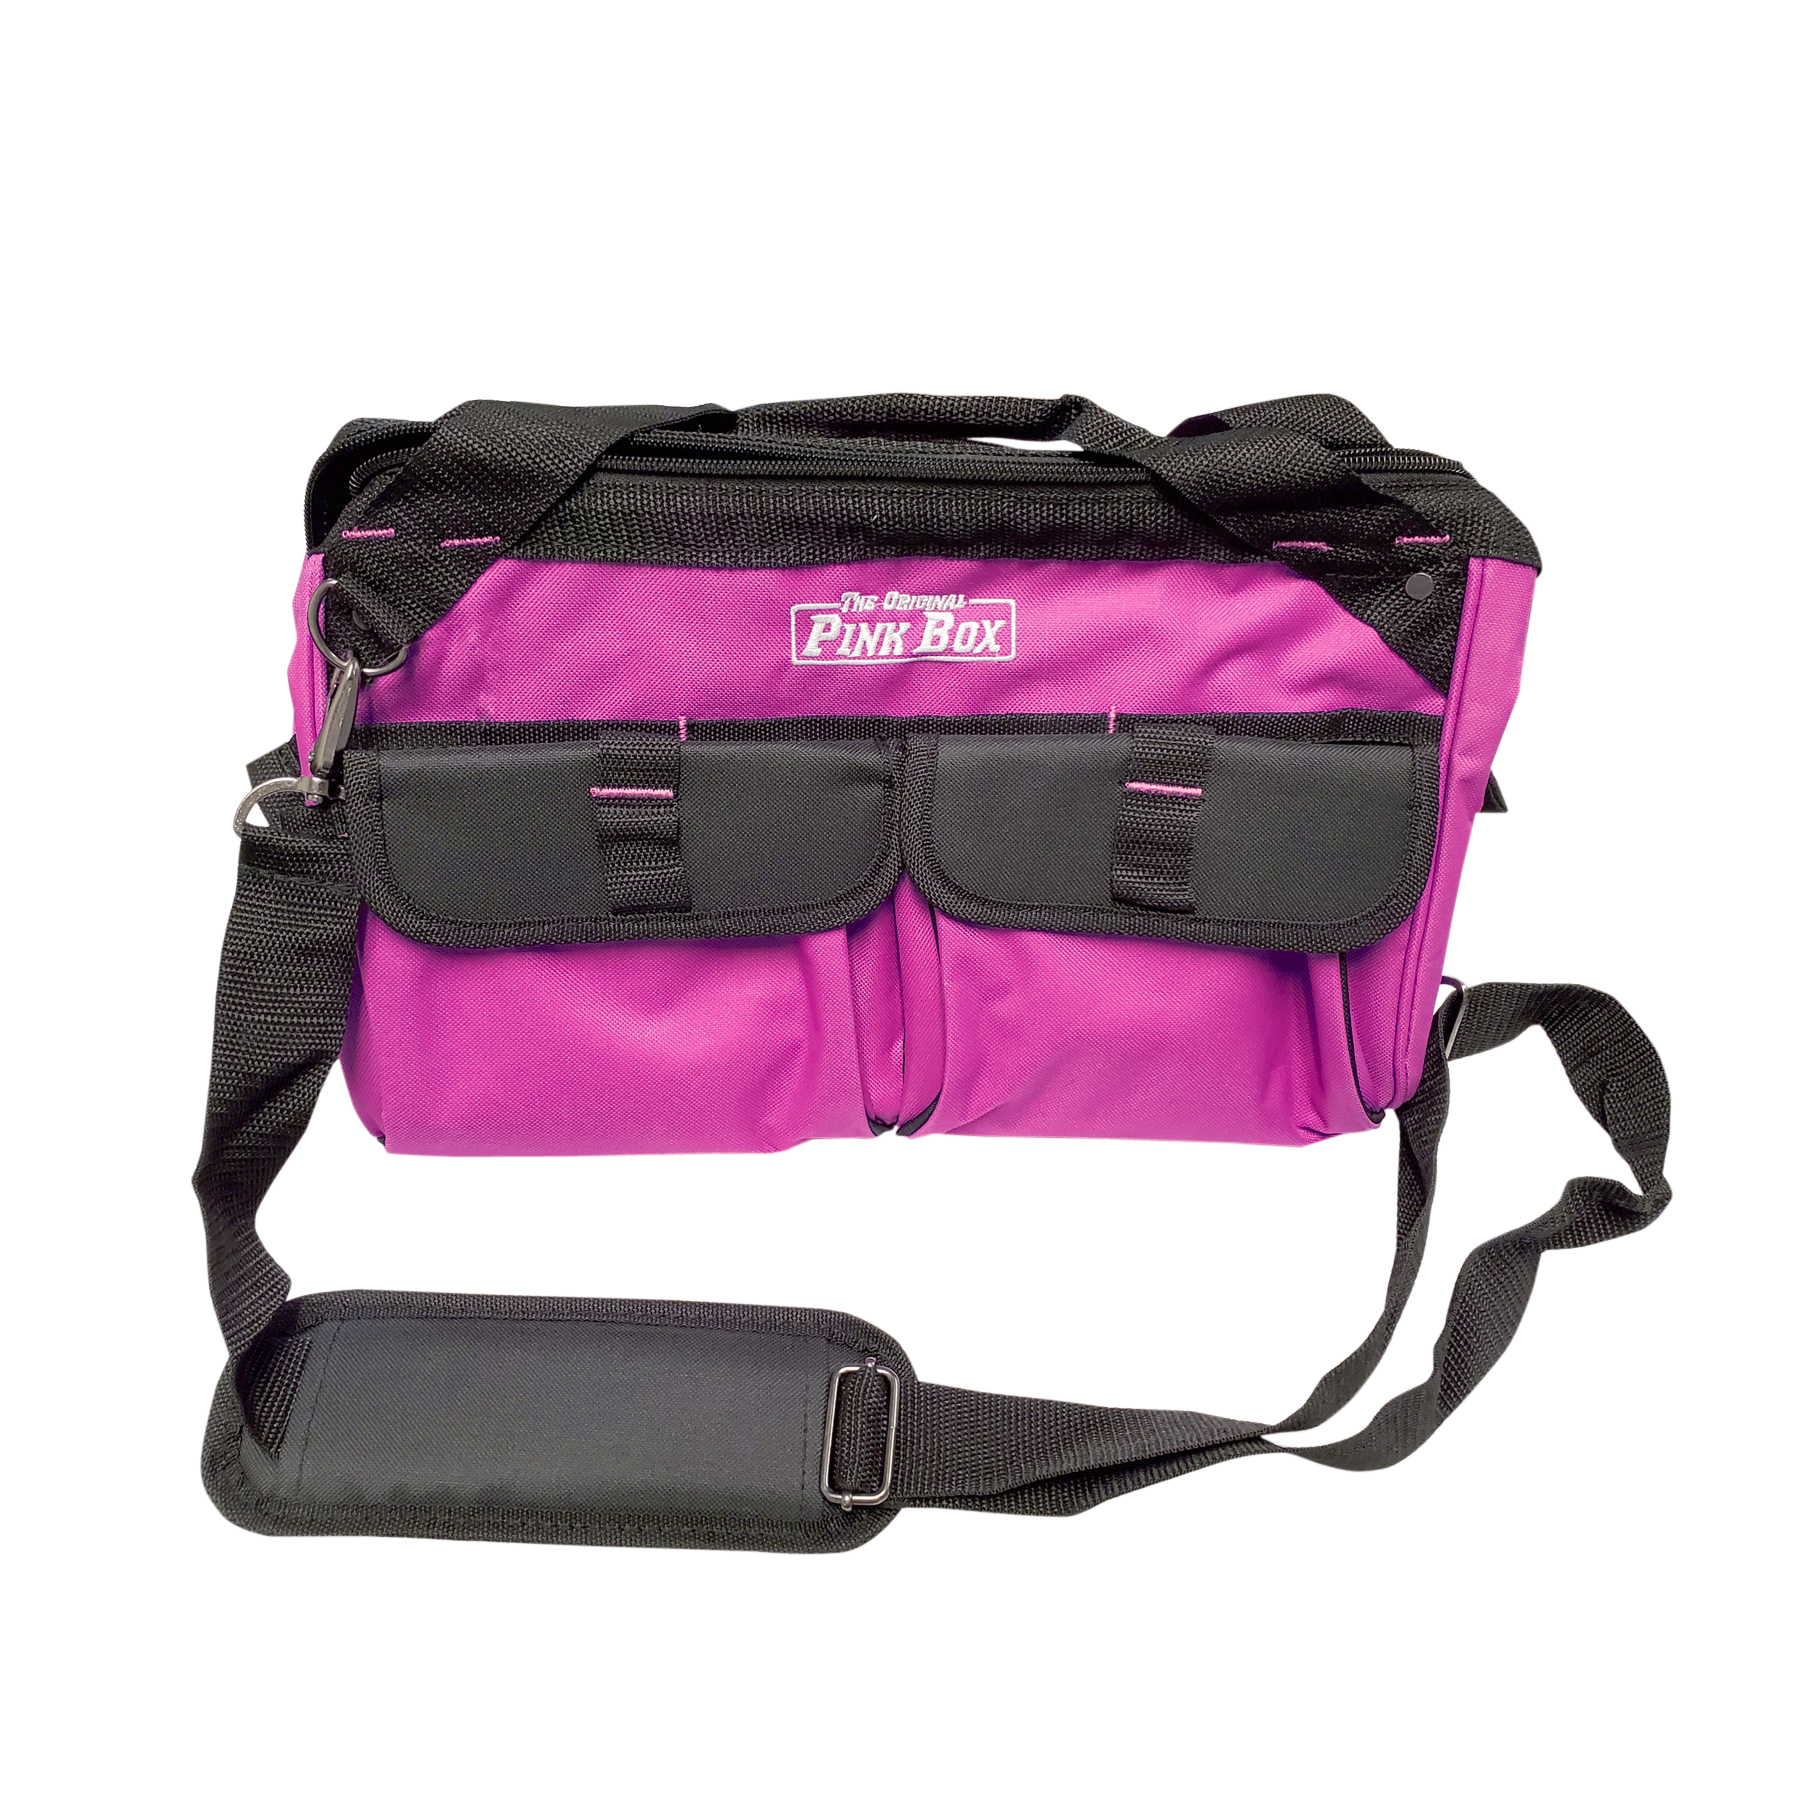 The Original Pink Box PB15TB 15-Inch Wide Mouth Soft Sided Tool Bag with Zipper and Shoulder Strap, Pink by Cala Industries, Inc